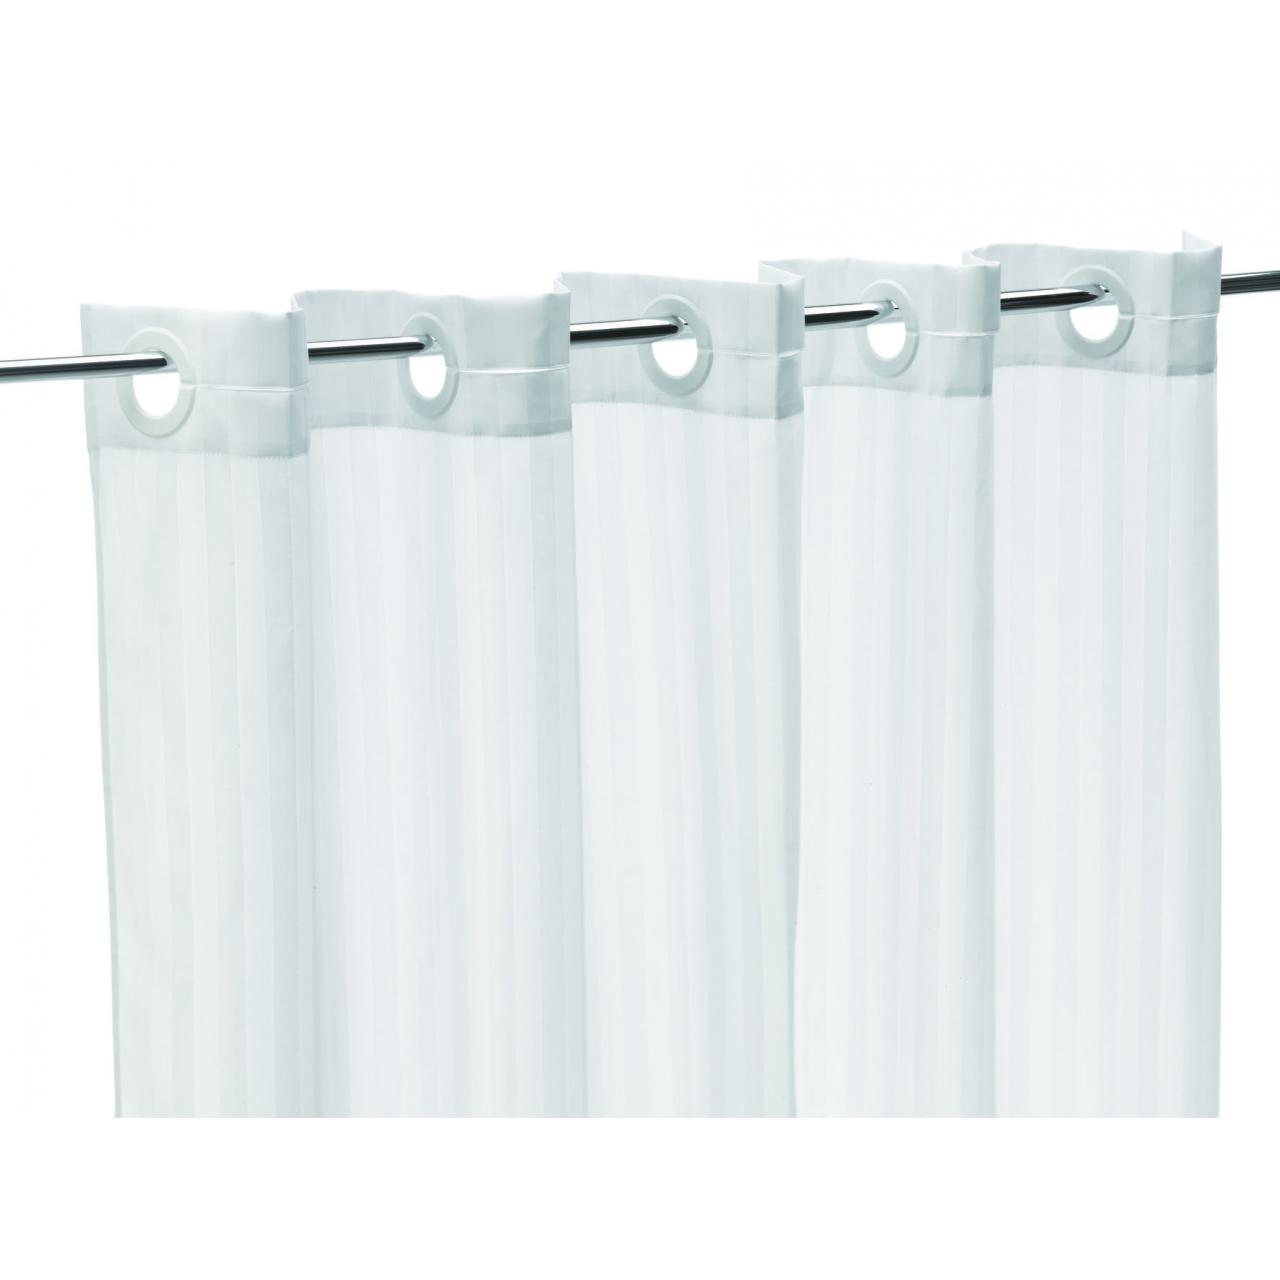 QUICK-FIT SHOWER CURTAIN (PACK OF 5)